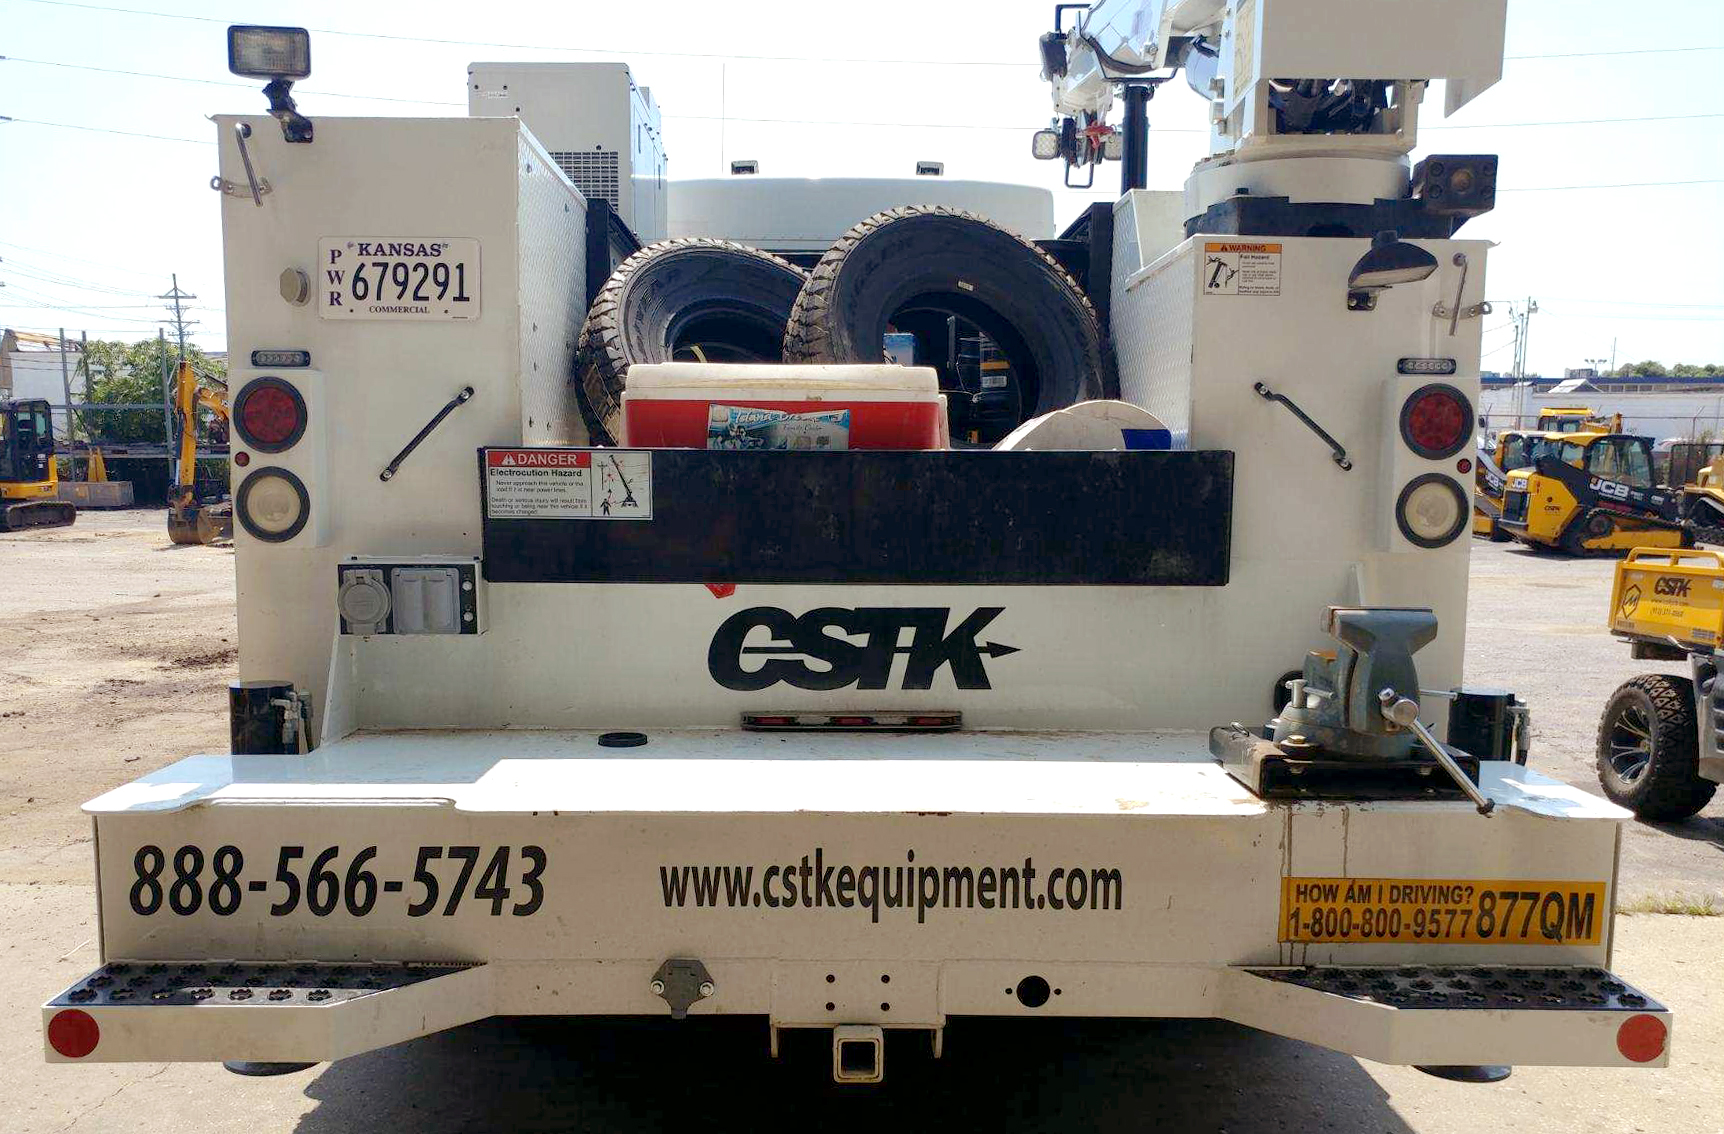 CSTK Kansas City Equipment Vehicle Decals Stickers Van Truck DOT Number Safety Message Custom Graphics Banners Logo Order Vehicle Wrap Graphics Service Construction Equipment Van Car Boat Golf Cart Banner Display Business